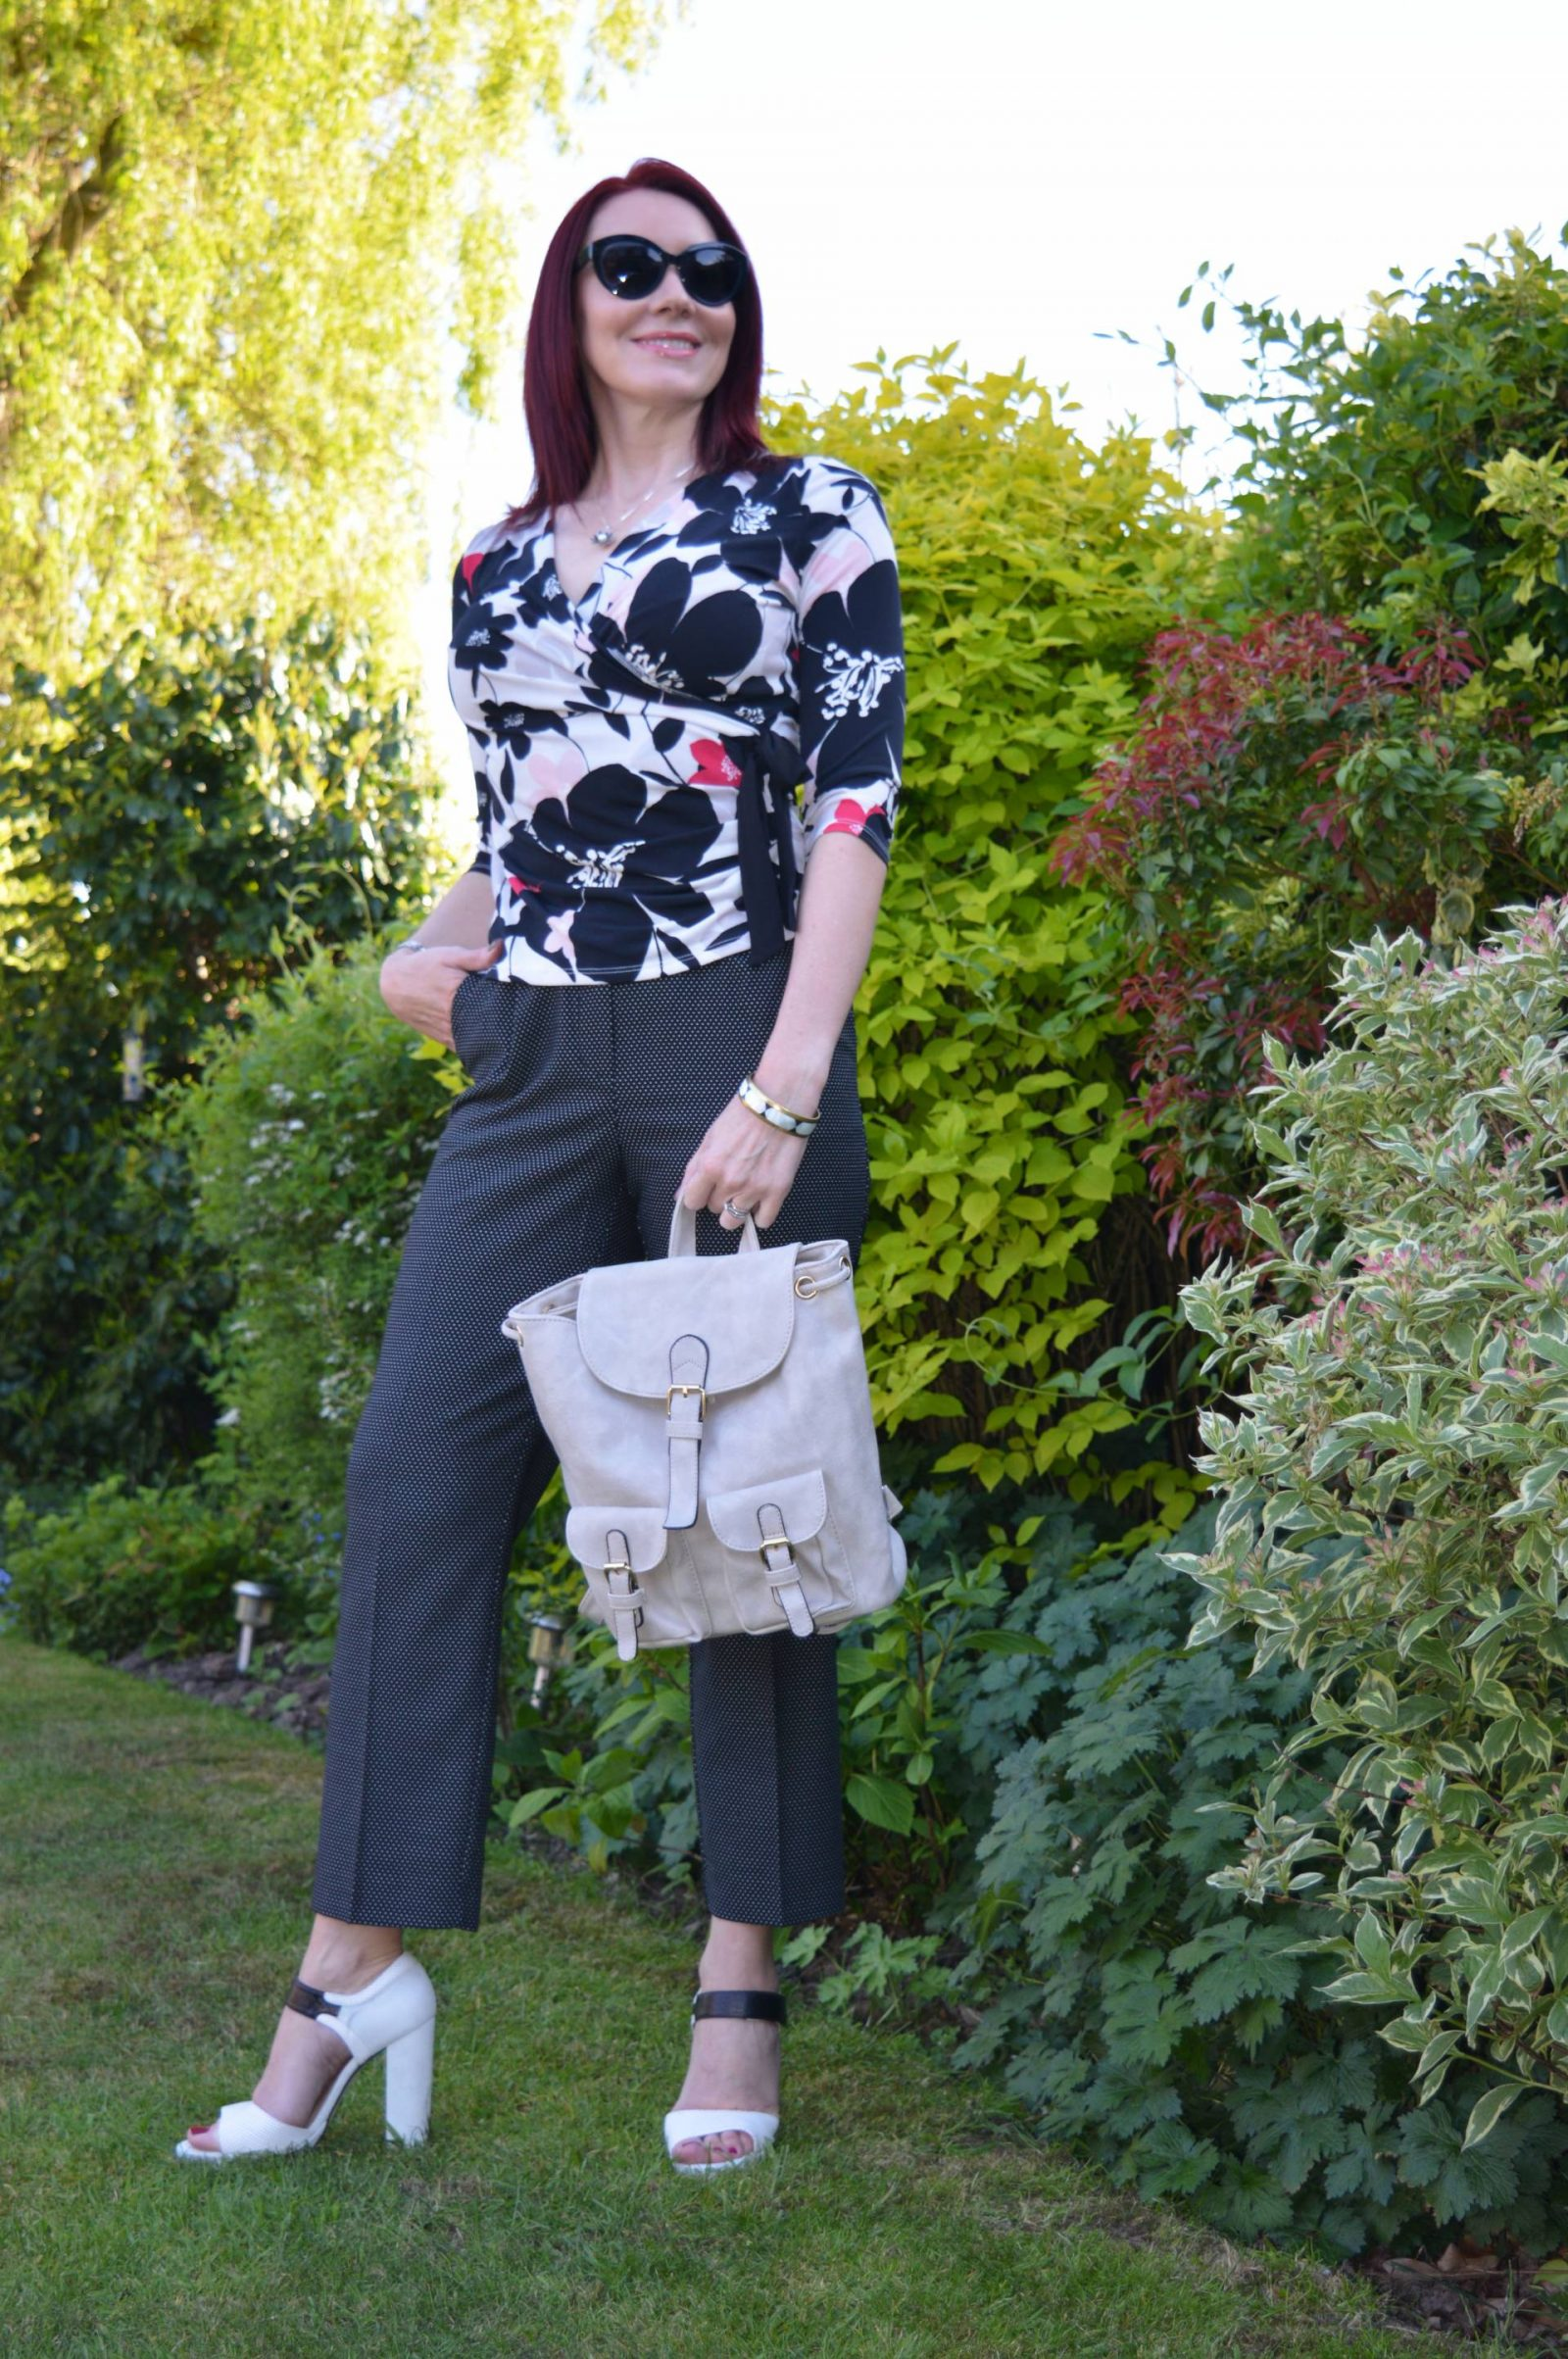 pattern mixing with floral print and spots Ooh accessories backpack